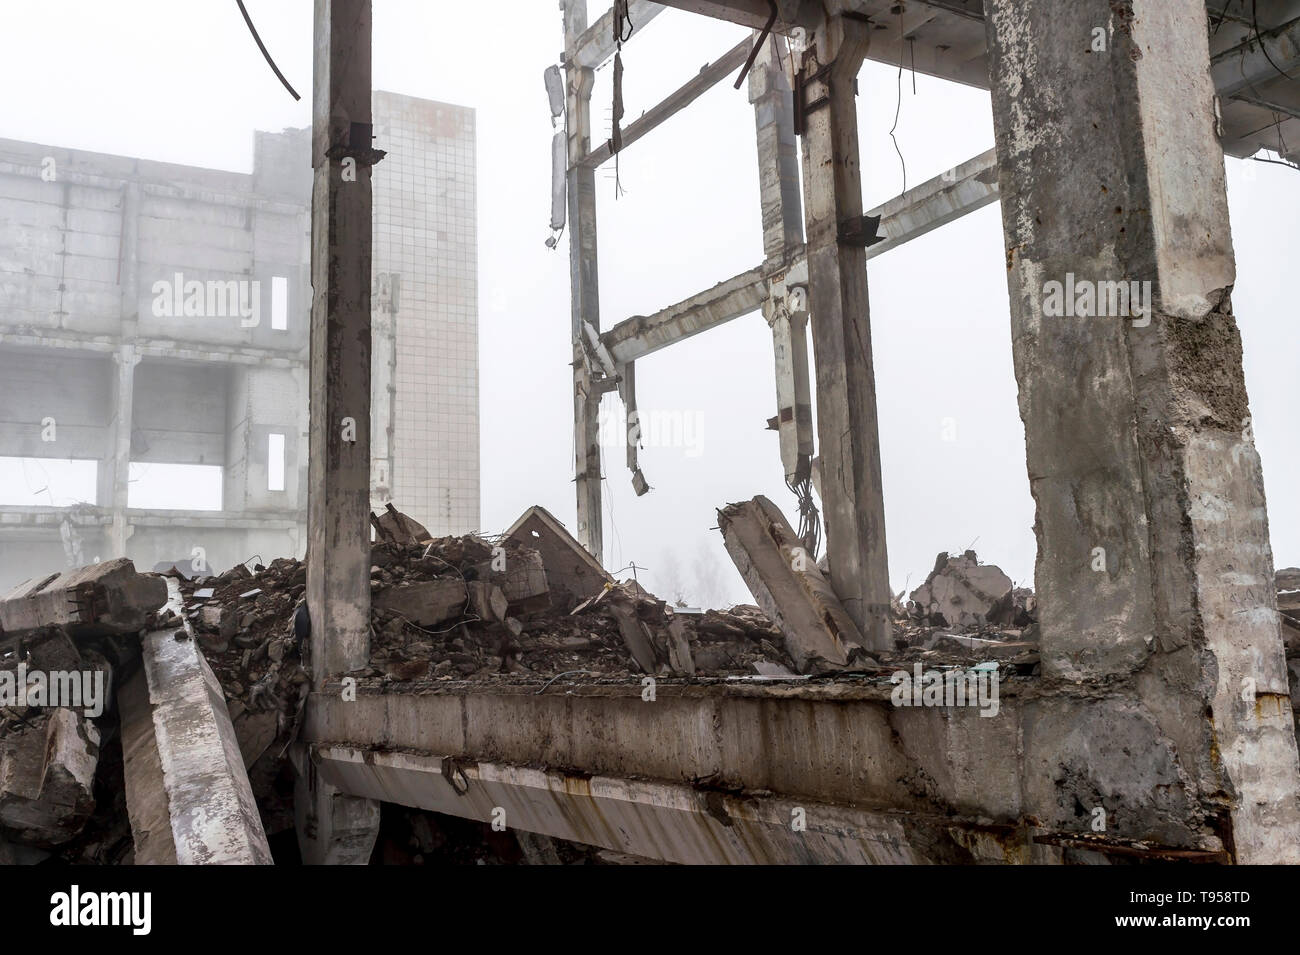 The destroyed big concrete building in a foggy haze. The remains of the frame of gray concrete piles and debris of the building structure. Background. - Stock Image